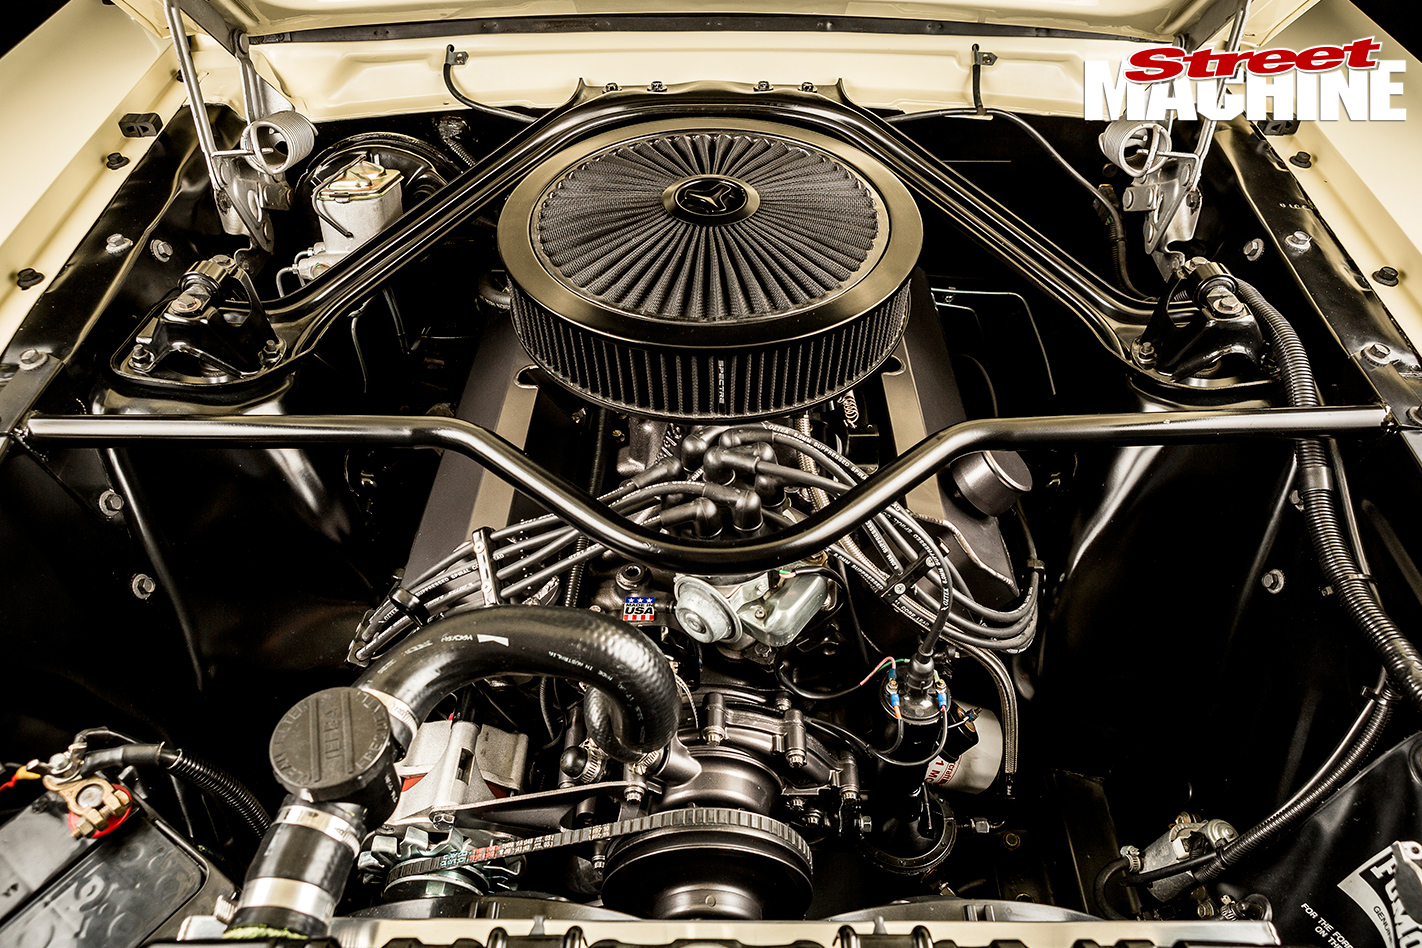 Ford -Mustang -1-engine